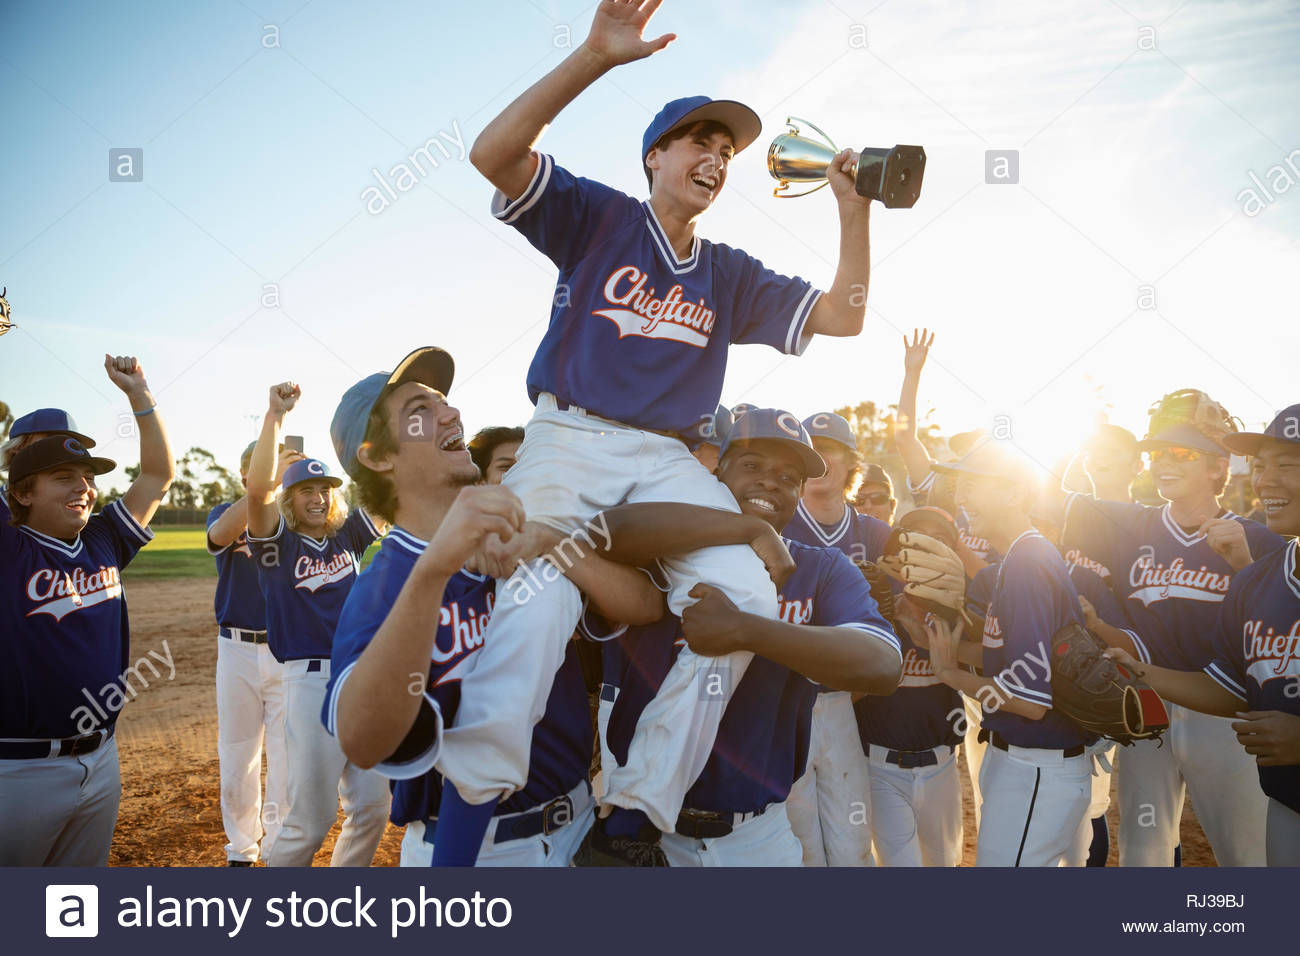 Excited baseball team celebrating, carrying player with trophy on shoulders Stock Photo